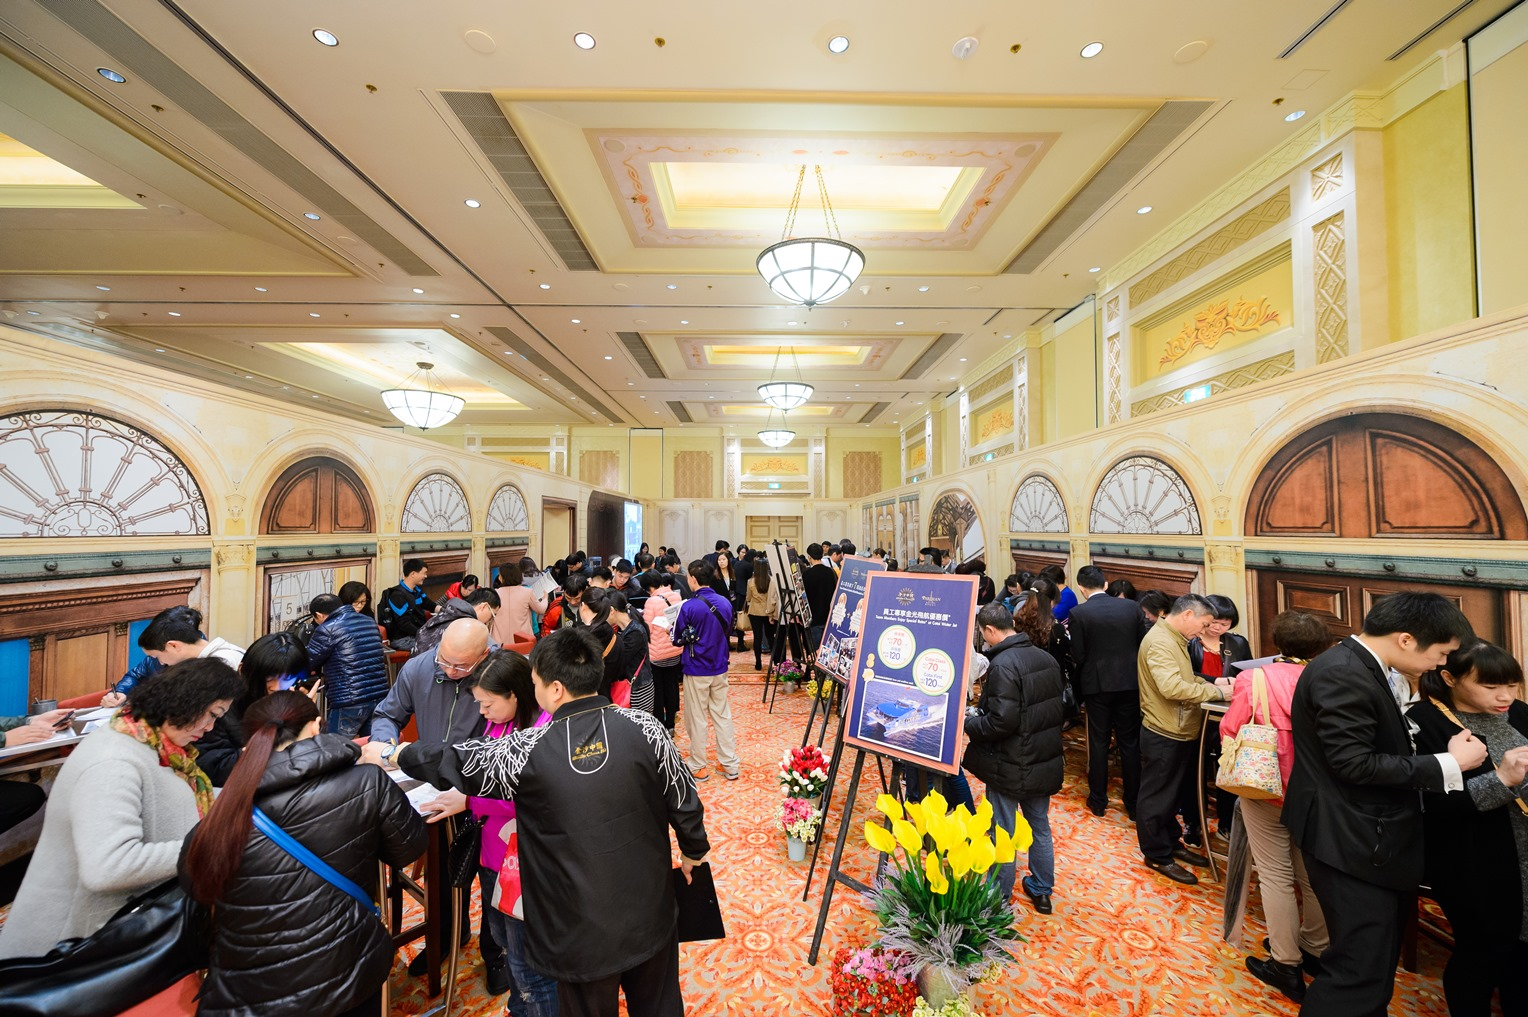 sands-china-recruitment-fair-for-the-parisian-macao-draws-thousands-of-locals